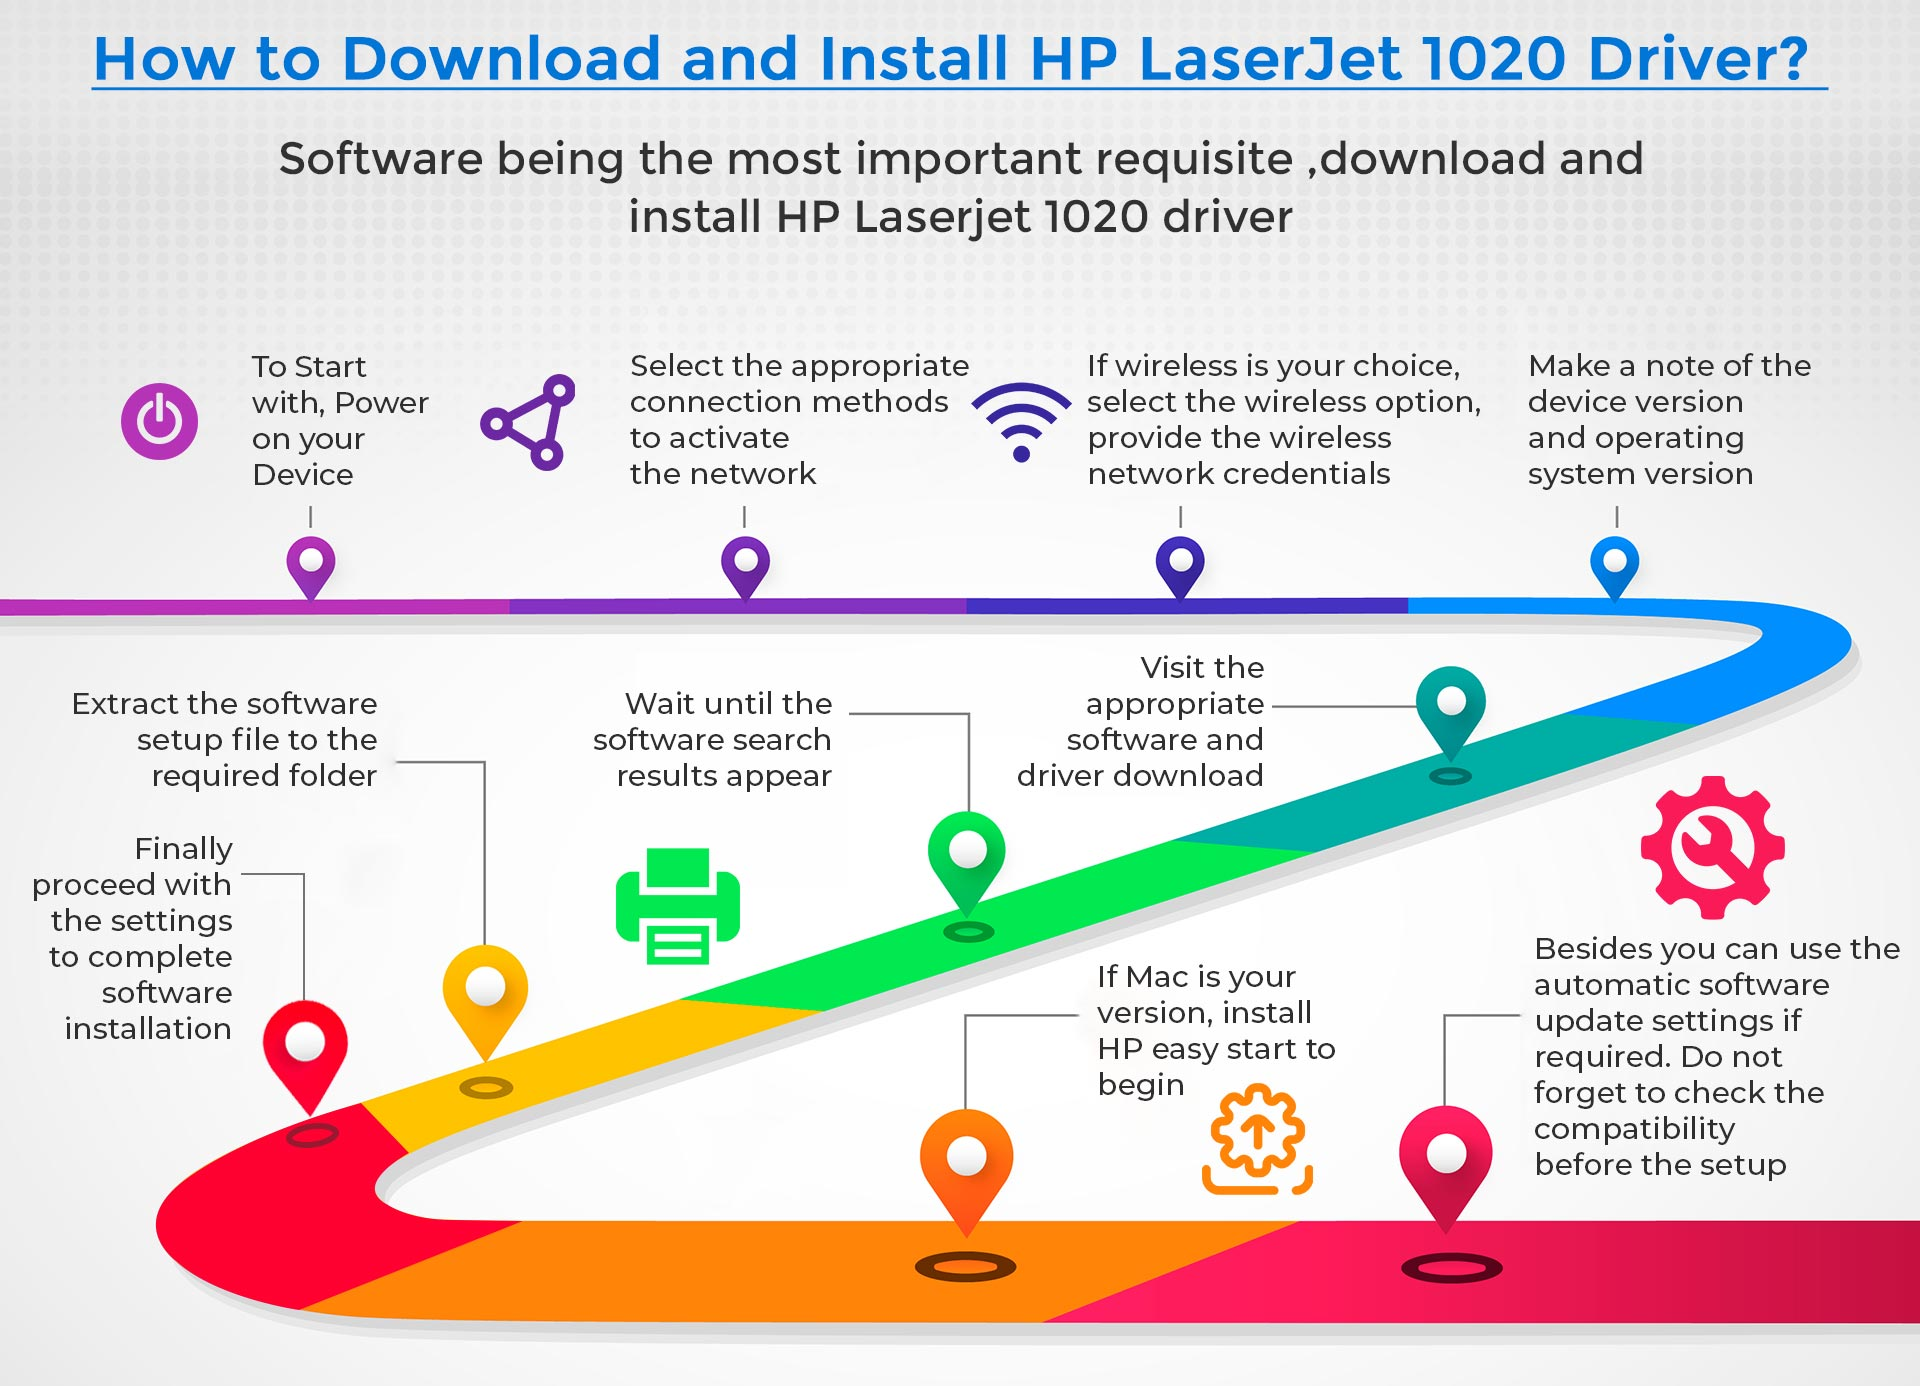 Install HP LaserJet 1020 Drivers on Mac